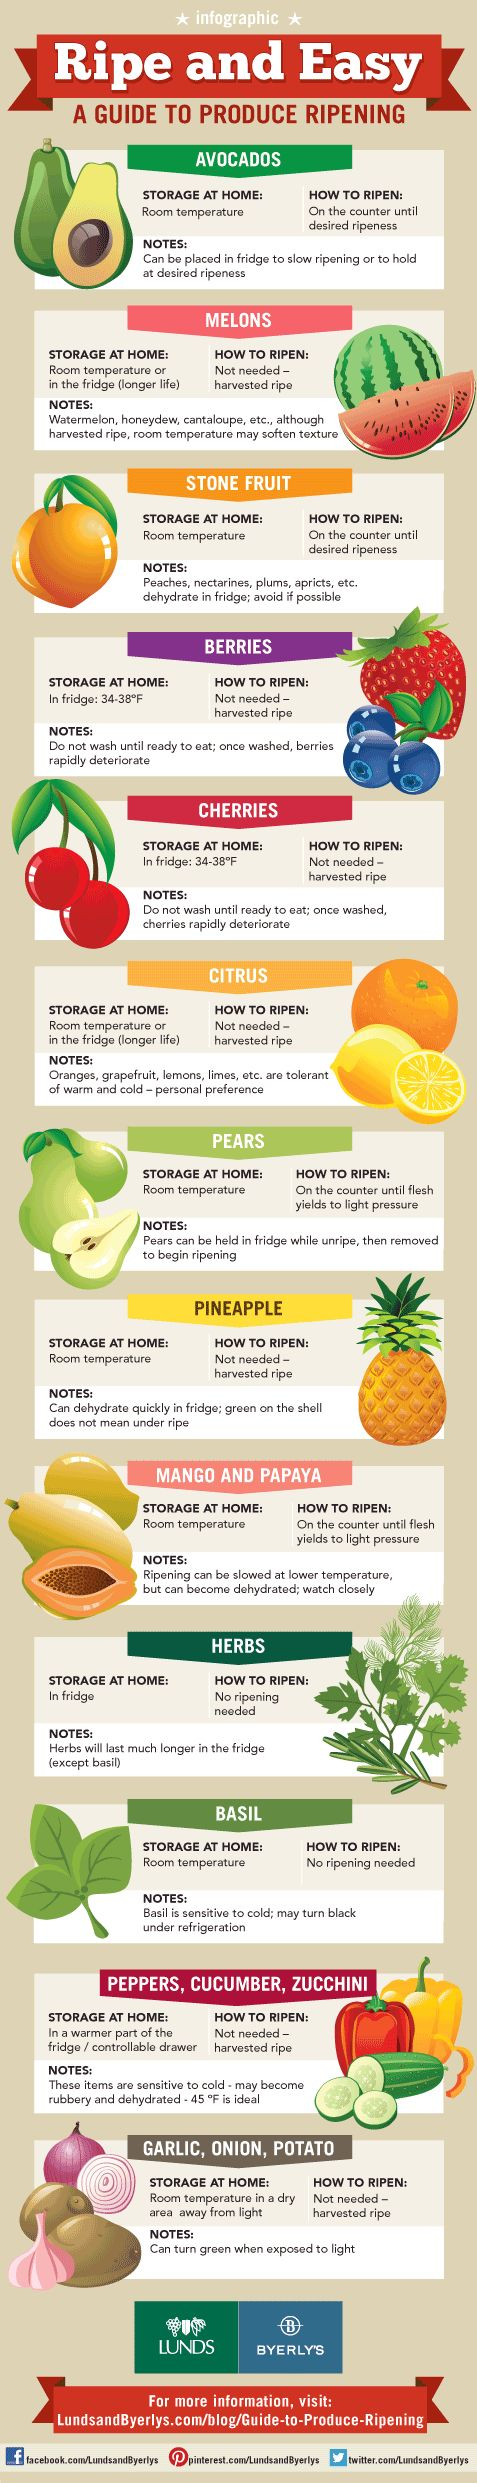 Ripe and Easy, A Guide To Produce Ripening